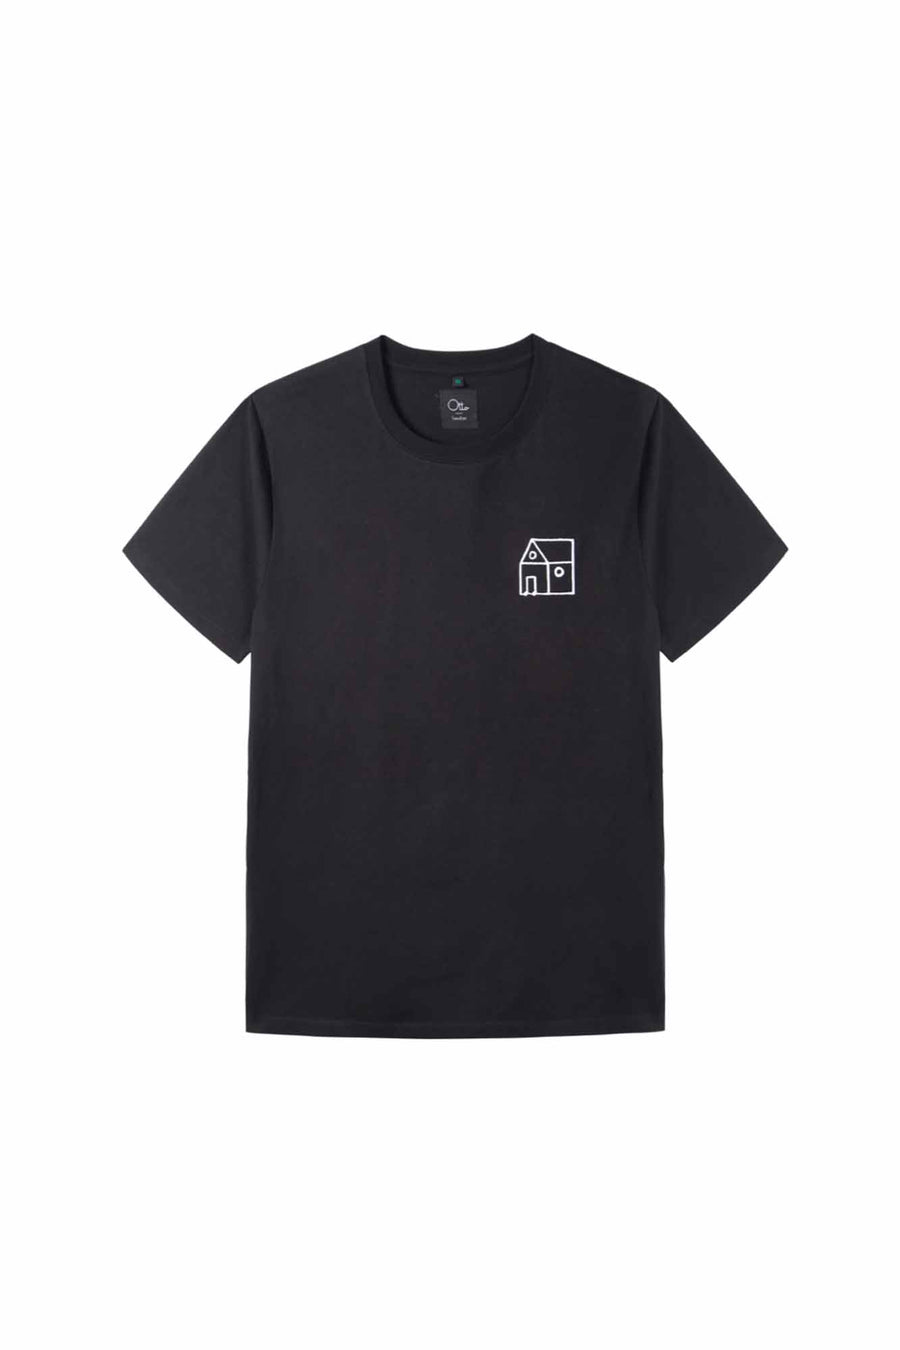 RAA x OL Crew Neck T-shirt in Black